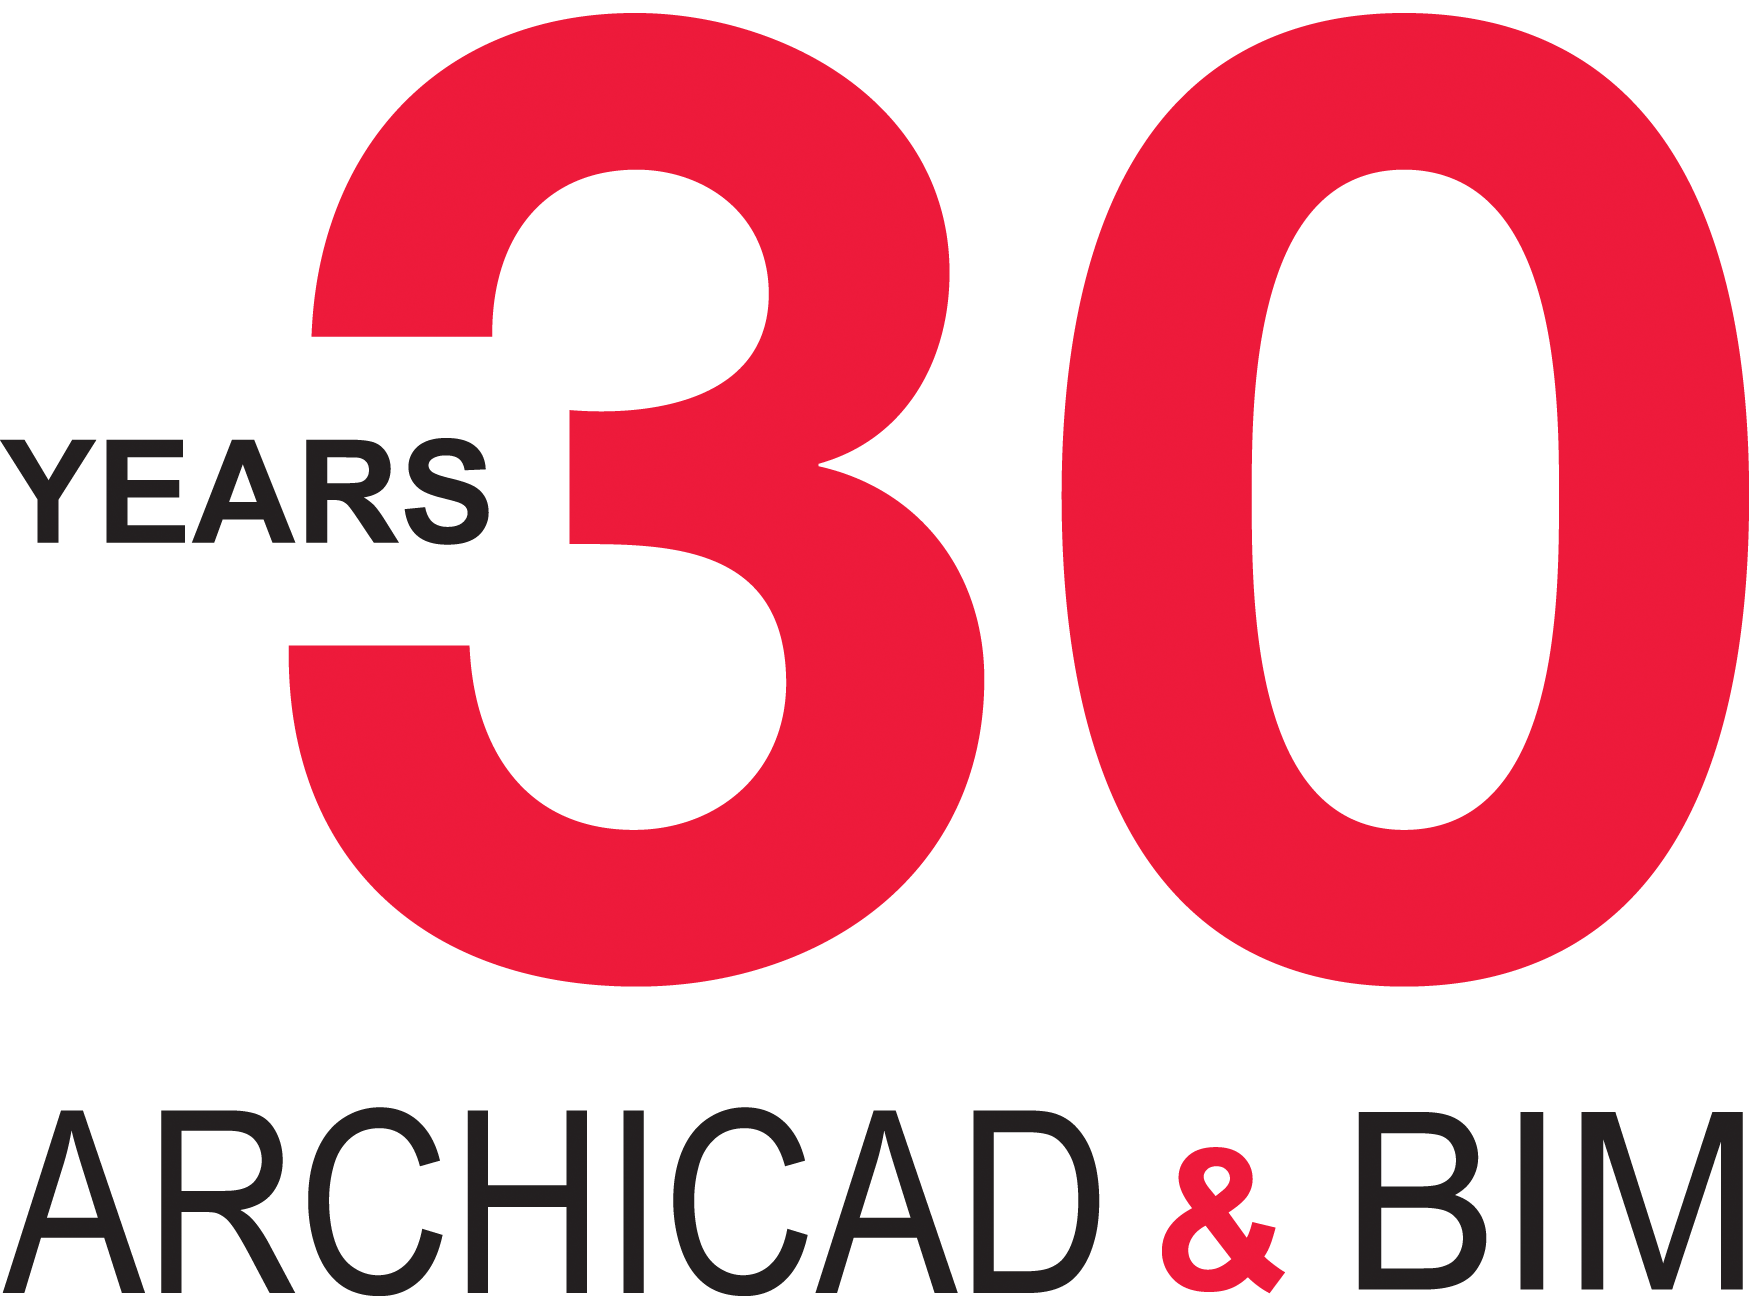 ARCHICAD 30 Years Anniversary logo for use on light background